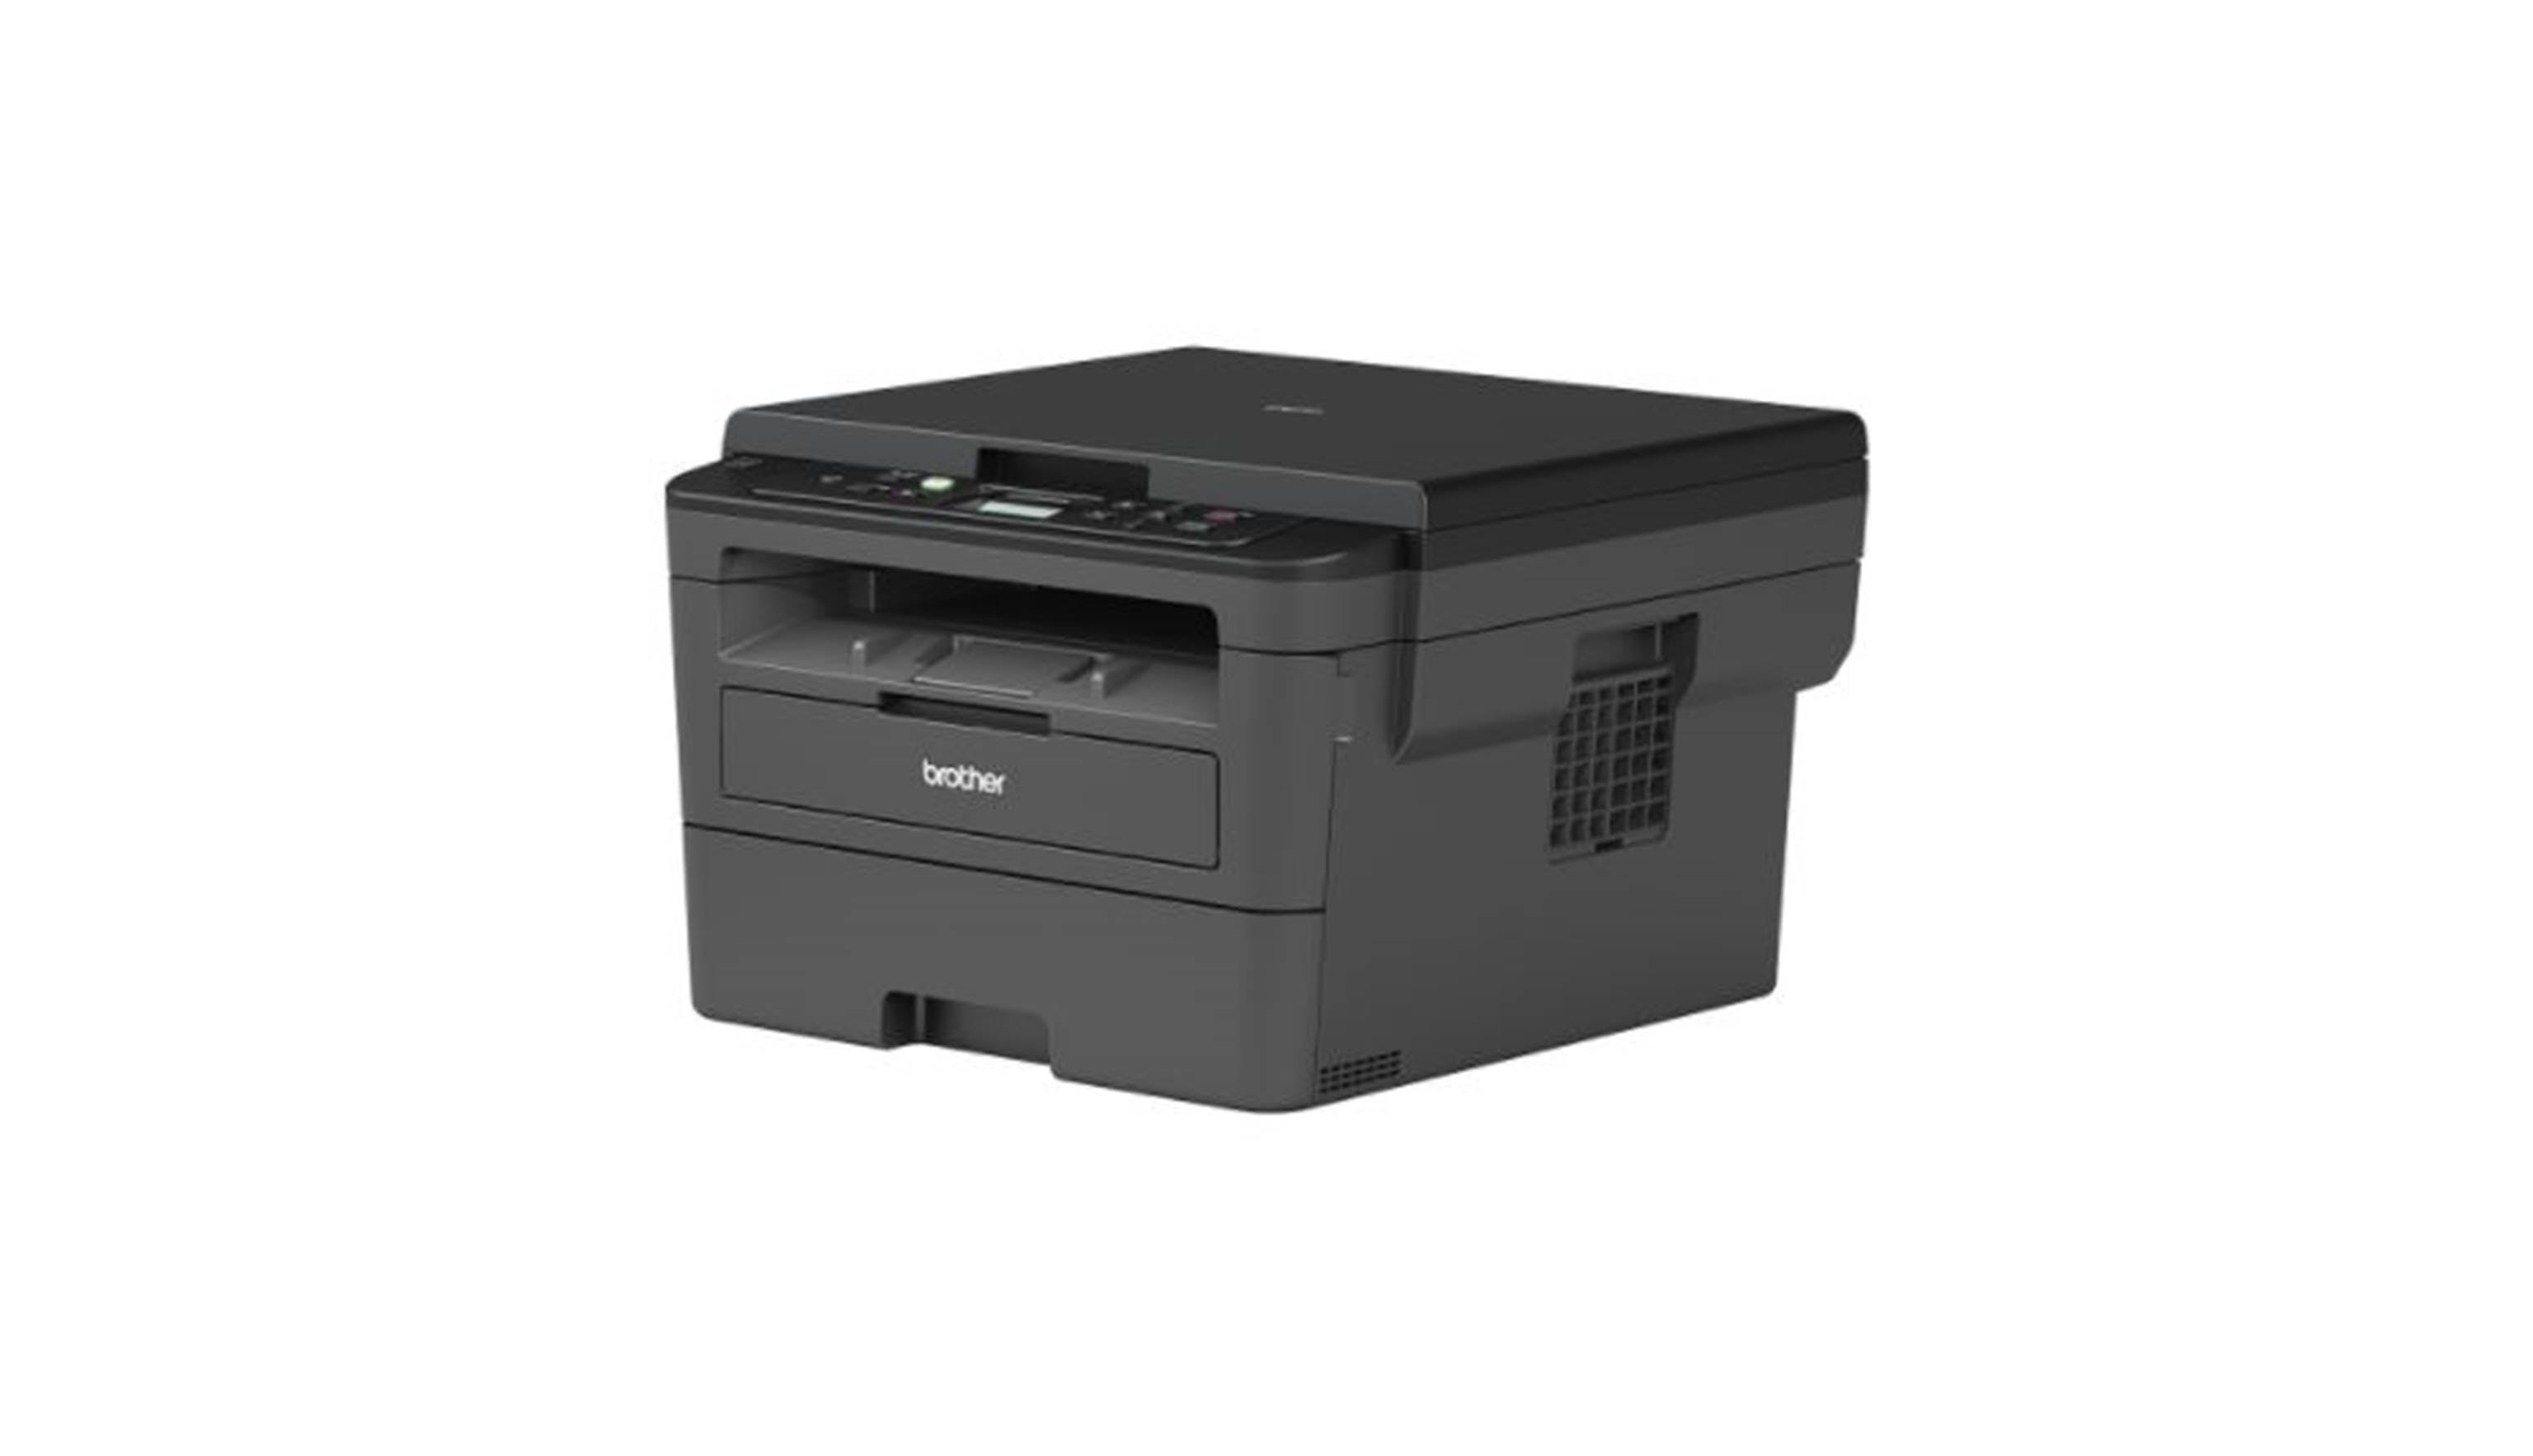 Brother DCP-L2535DW All-in-One Printer